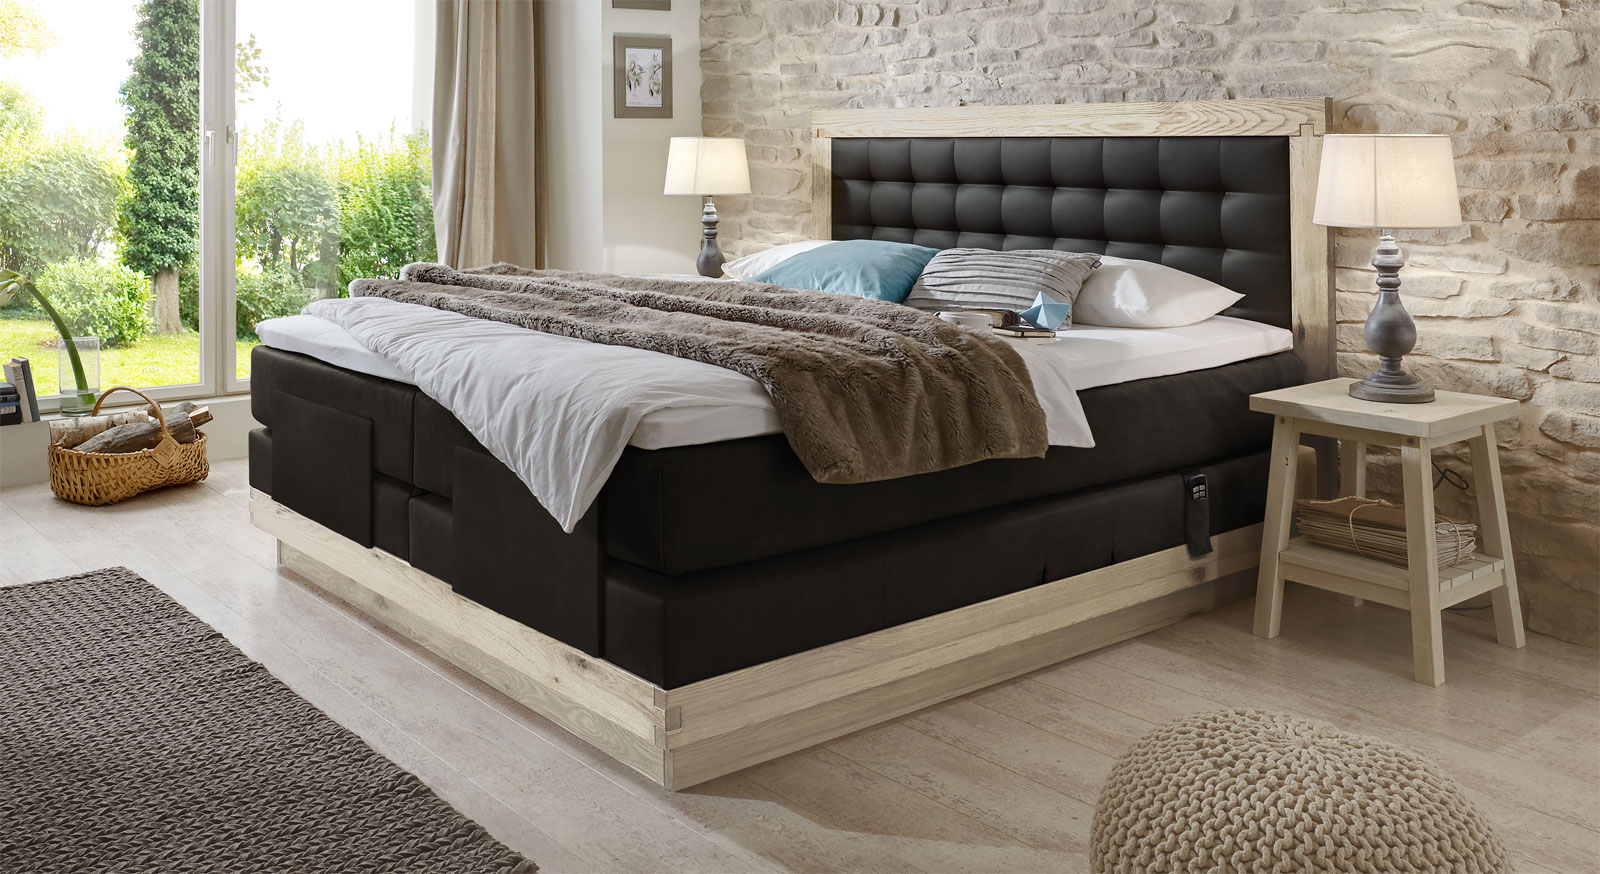 boxspringbetten designs amerika schlafzimmer m belideen. Black Bedroom Furniture Sets. Home Design Ideas